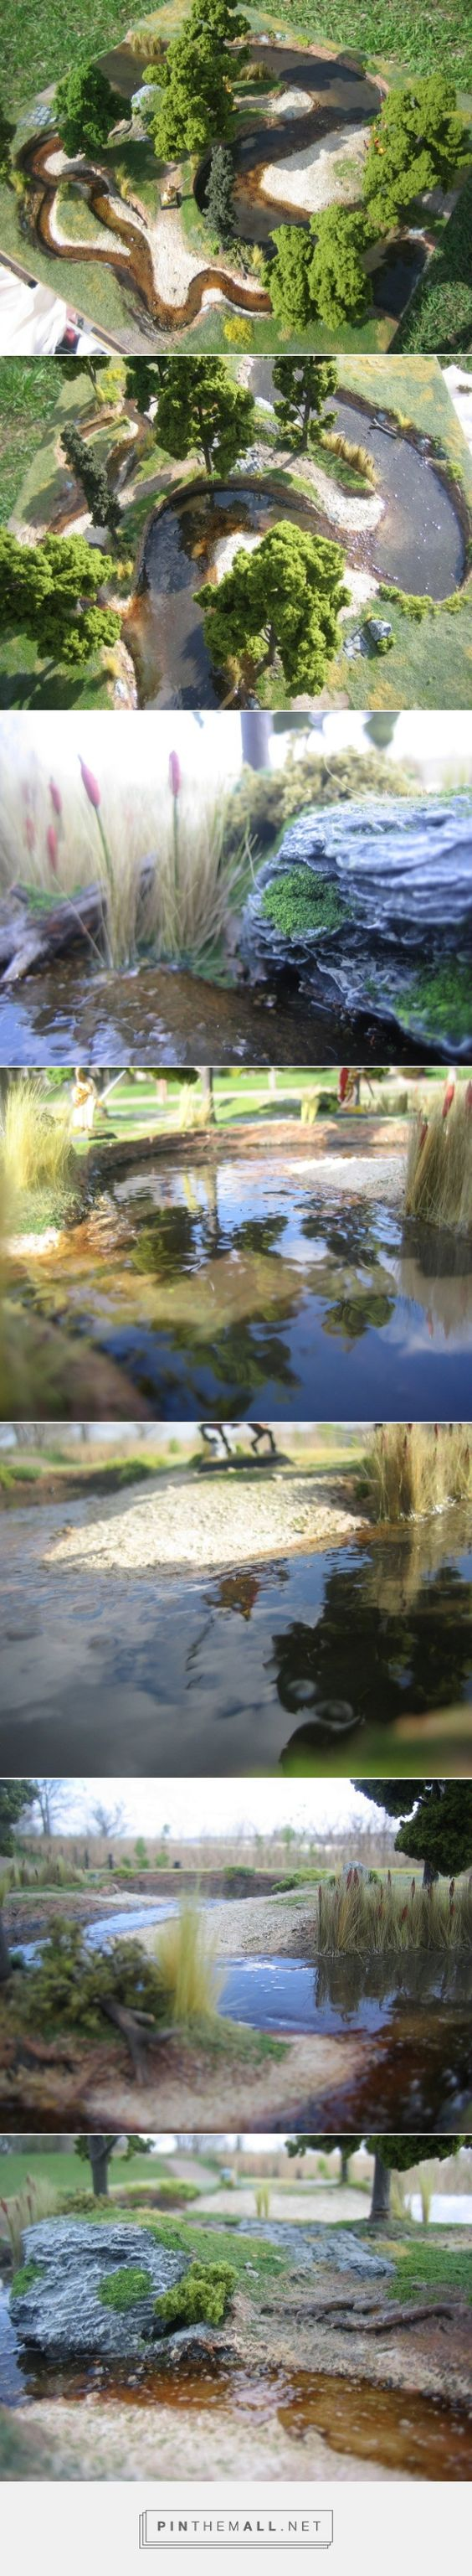 some amazing detail on this river by Zaboobadidoo... - a grouped images picture - Pin Them All